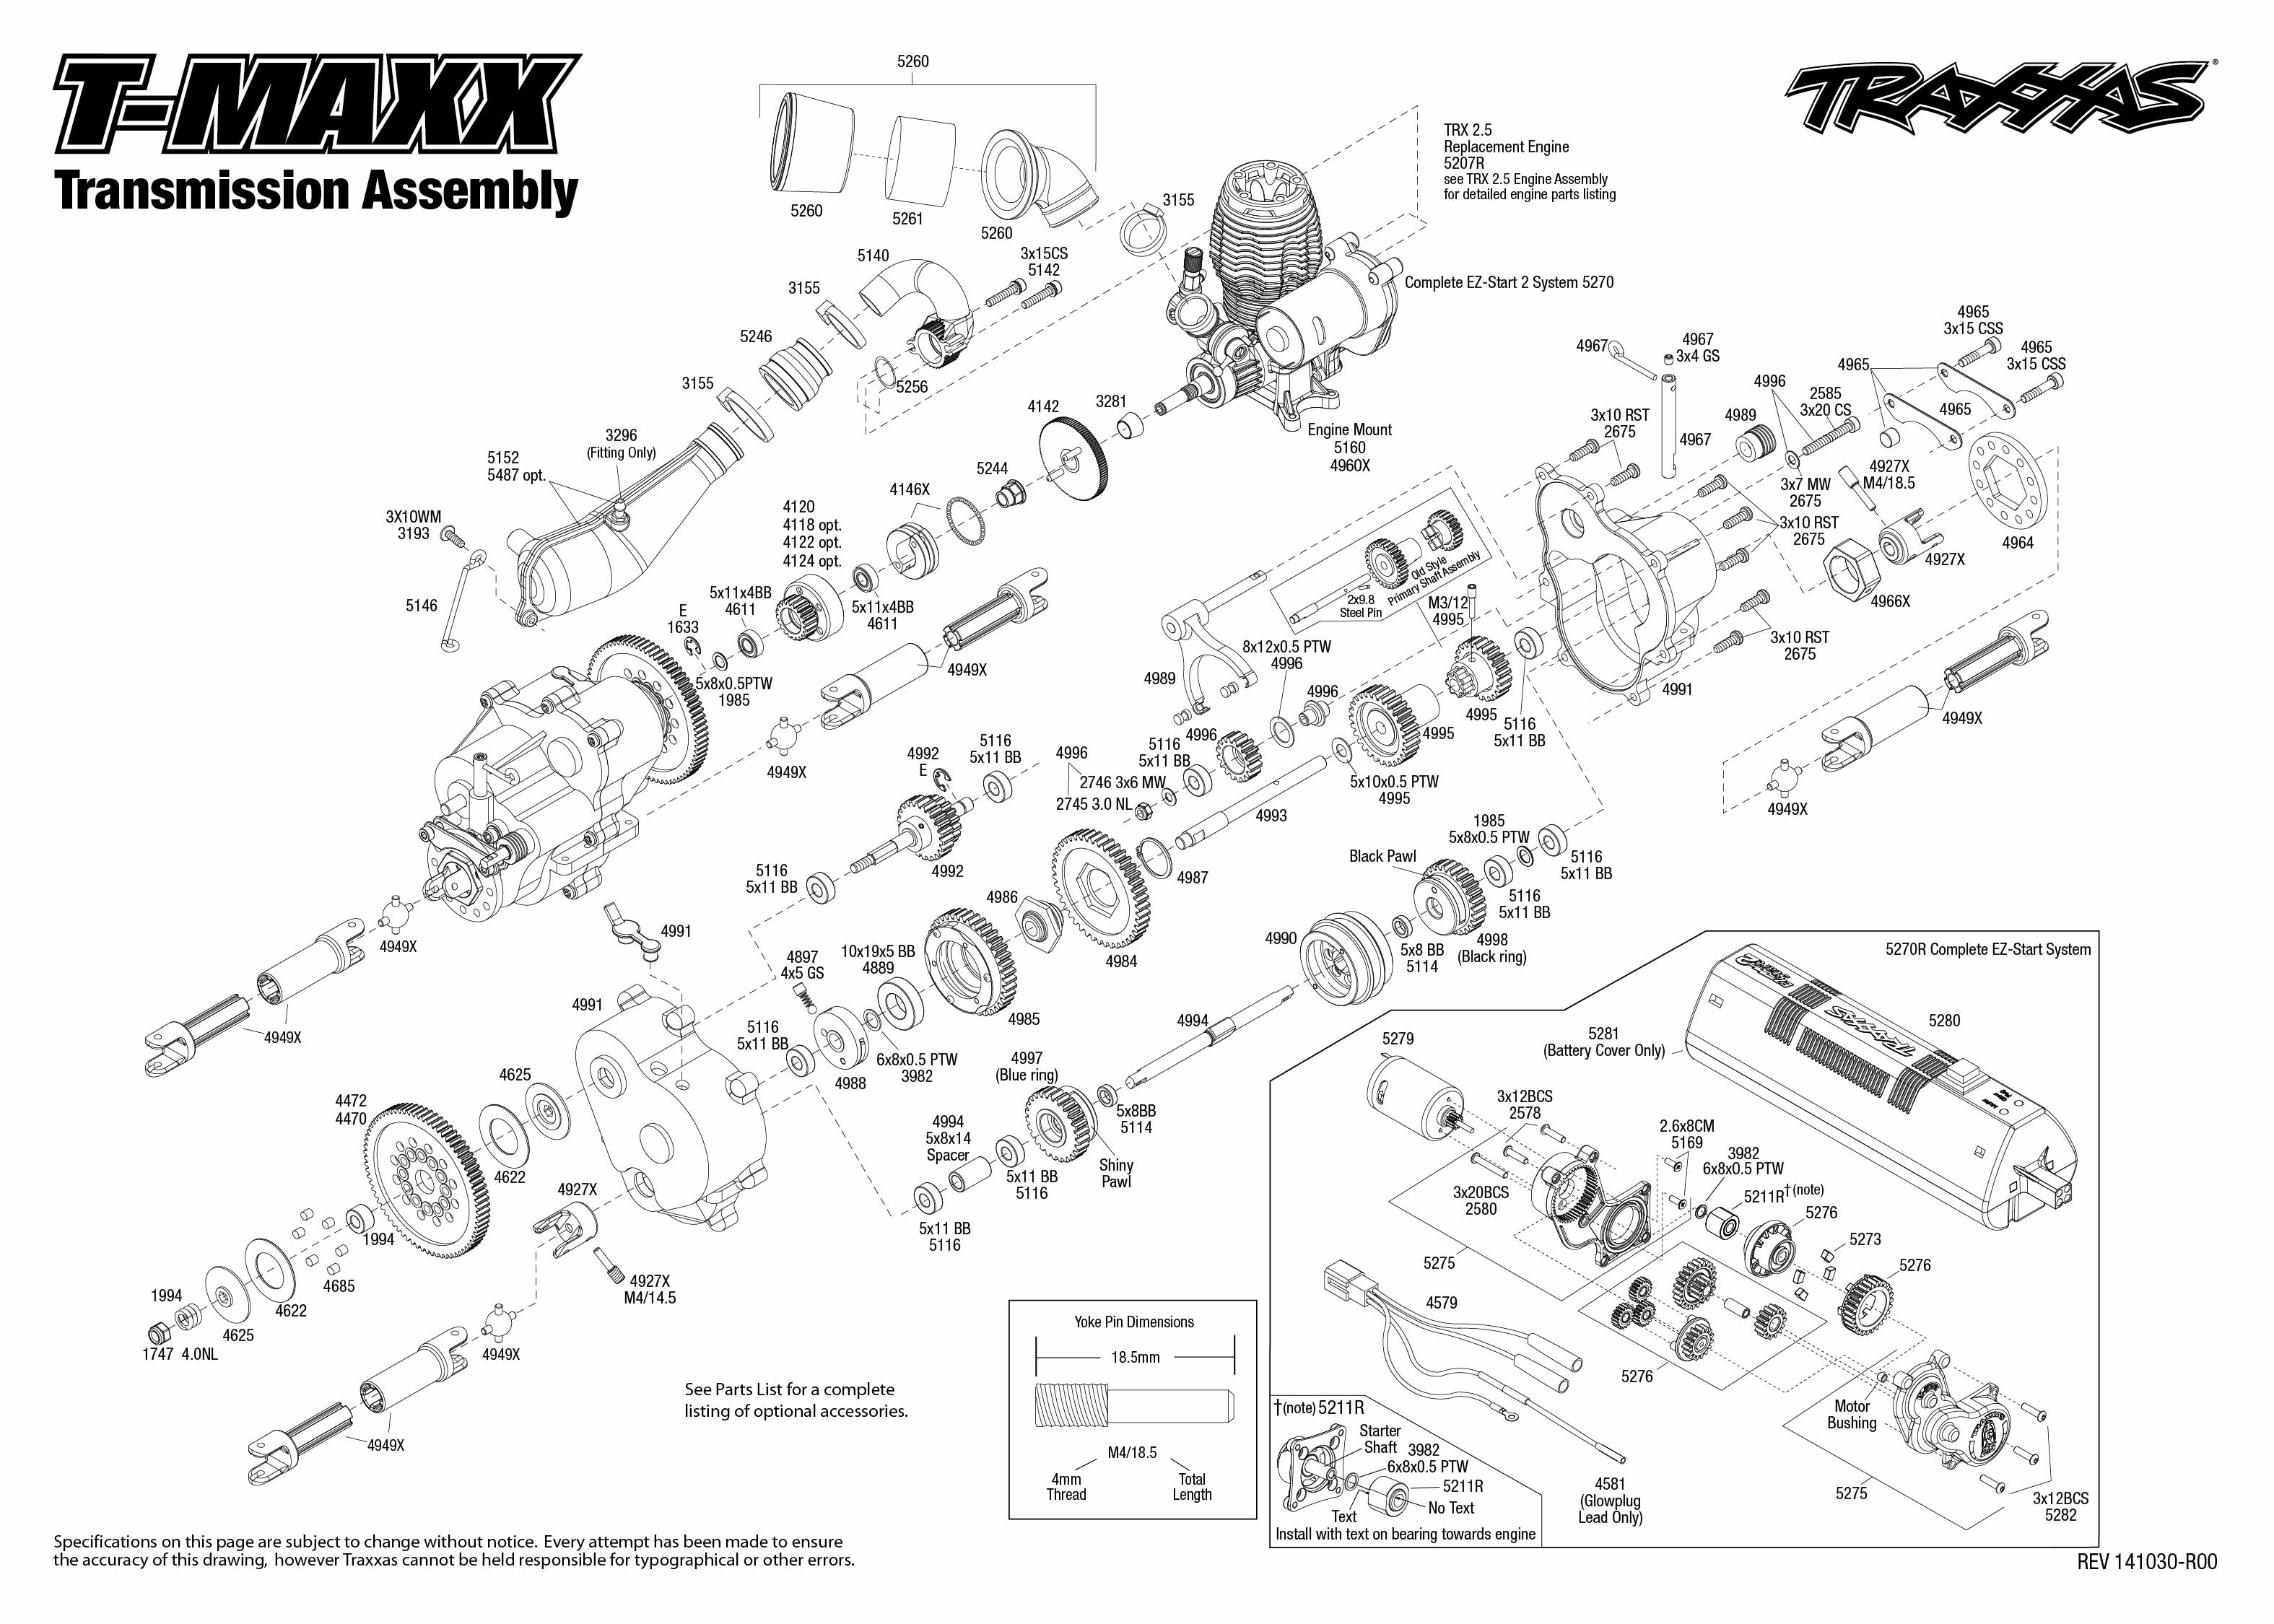 T Maxx 1 Transmission Assembly Exploded View